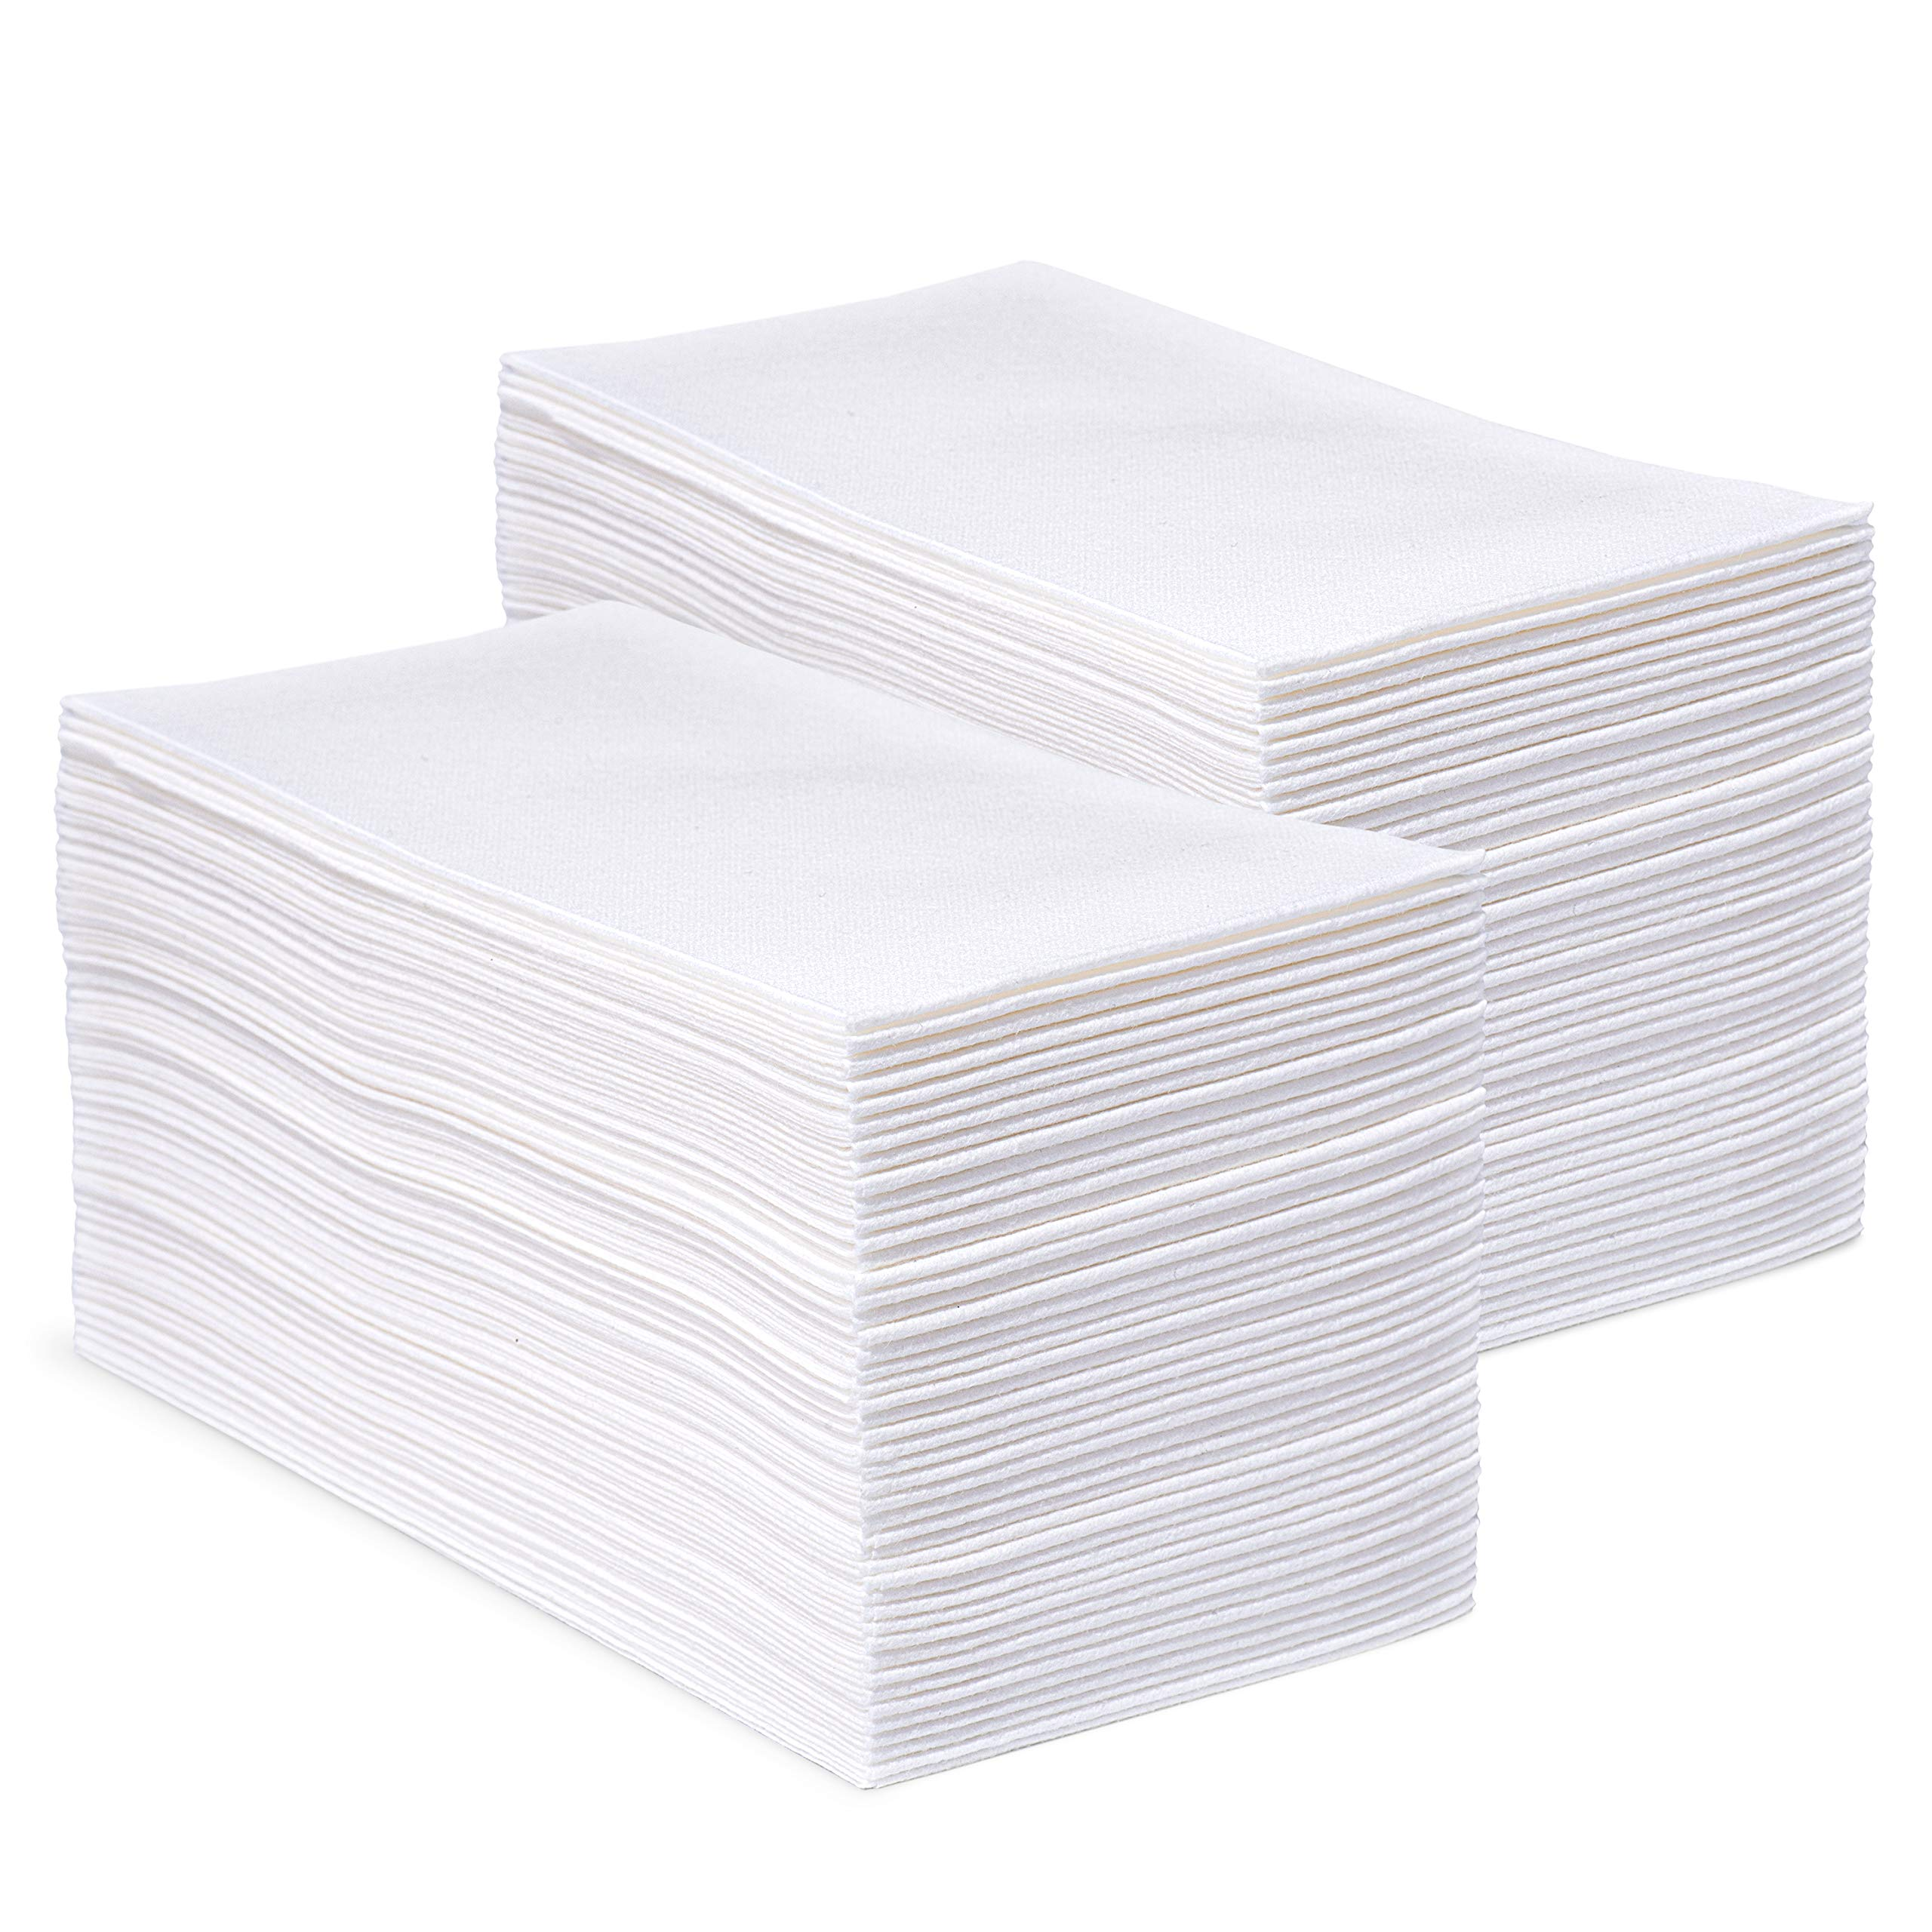 Bellingham Collection White Disposable Napkins and Hand Towels - Home and Office Kitchen Supplies, Toilet and Bathroom Use - Super Soft Linen-Like Airlaid Multifold Tissue - 12''x17'' - 200 Pcs